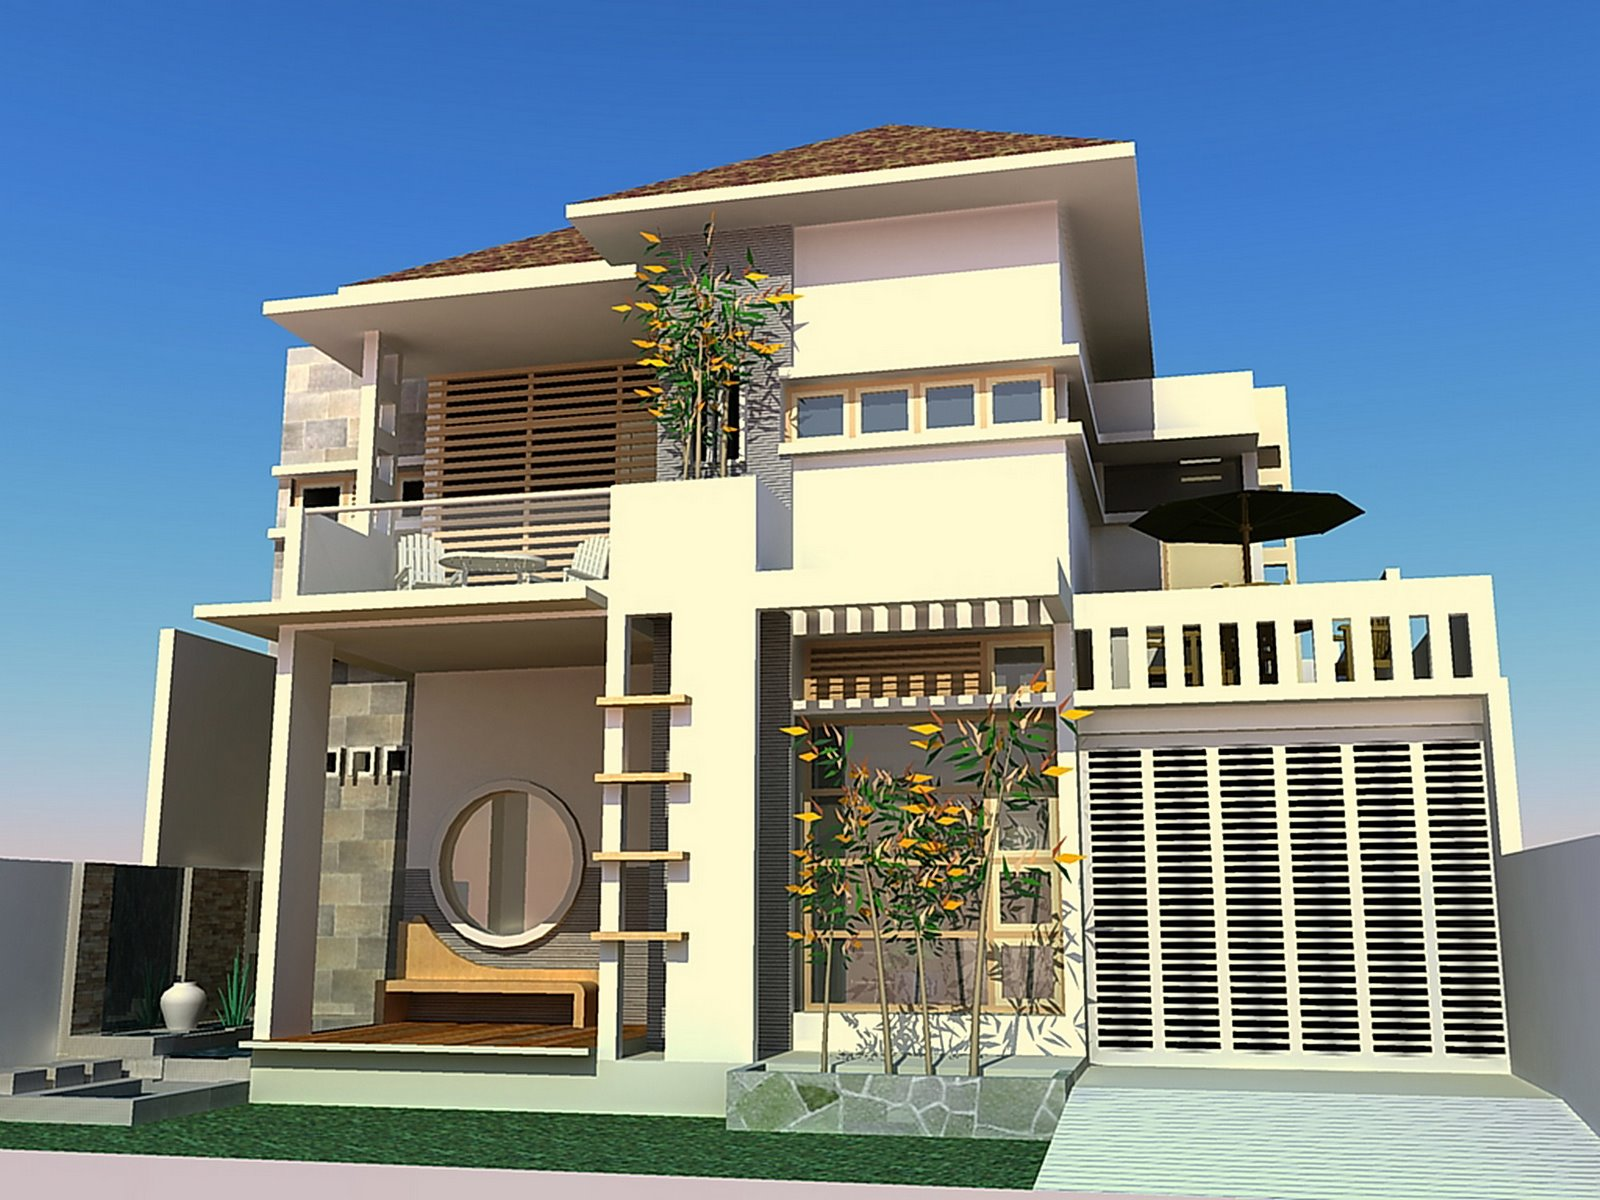 House design property external home design interior for Building front design